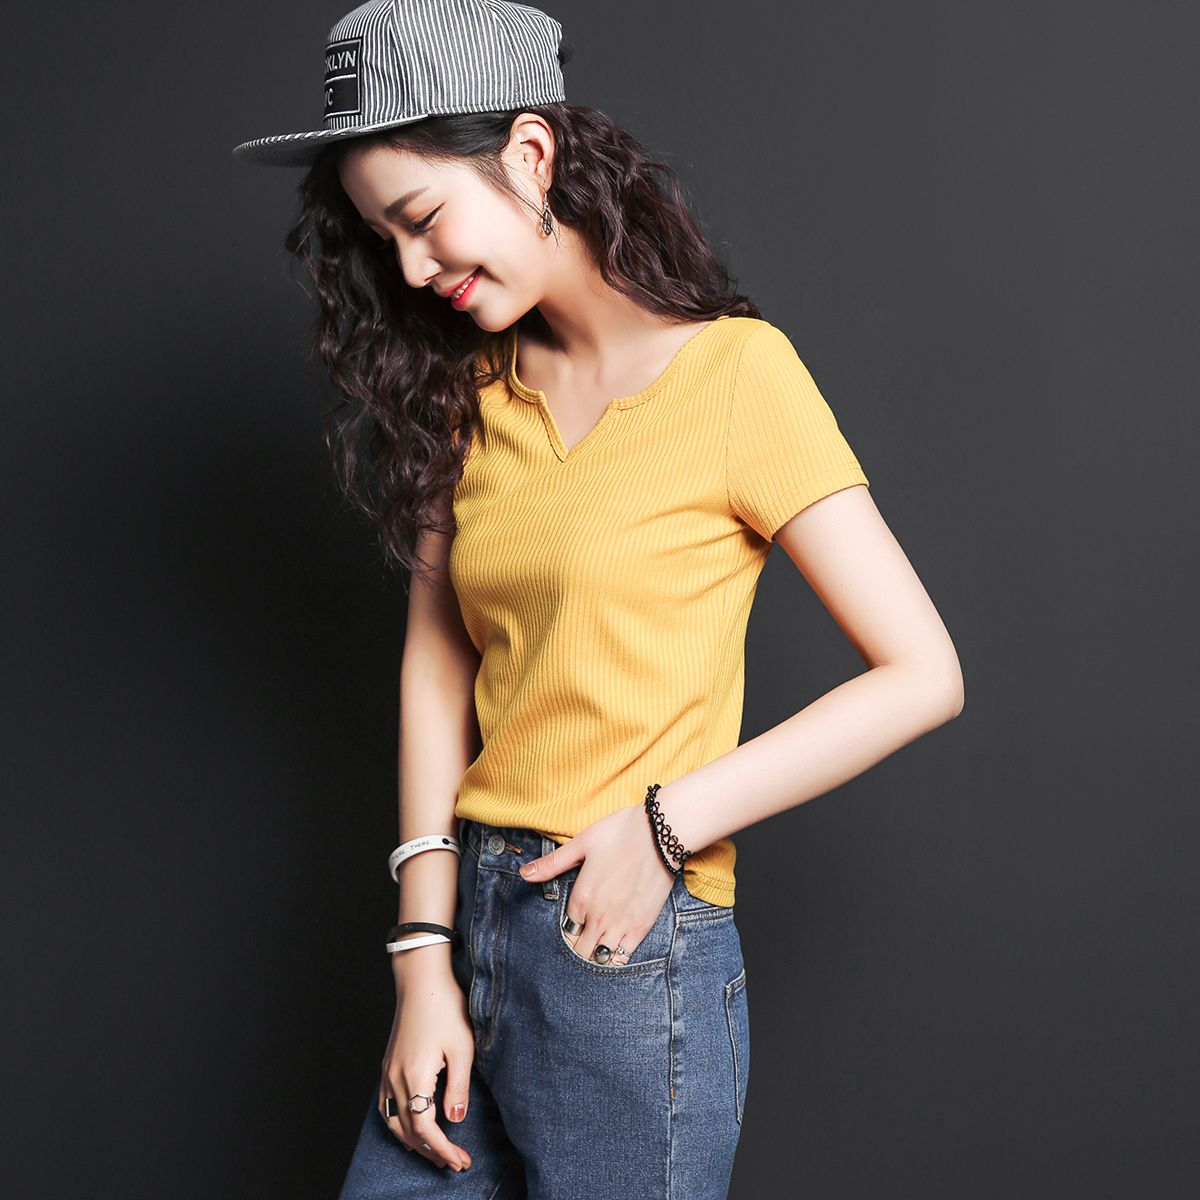 Product Name: MA2024 Rib T-shirt With Cut Out V Neck Click On Link To View This Product : http://gurusing.sg/product/ma2024-rib-t-shirt-cut-v-neck/. We Have Publish More Products And Special Offer Are Going On Our Website GuruSing. Hurry Enjoy Up To 80% Discounts......